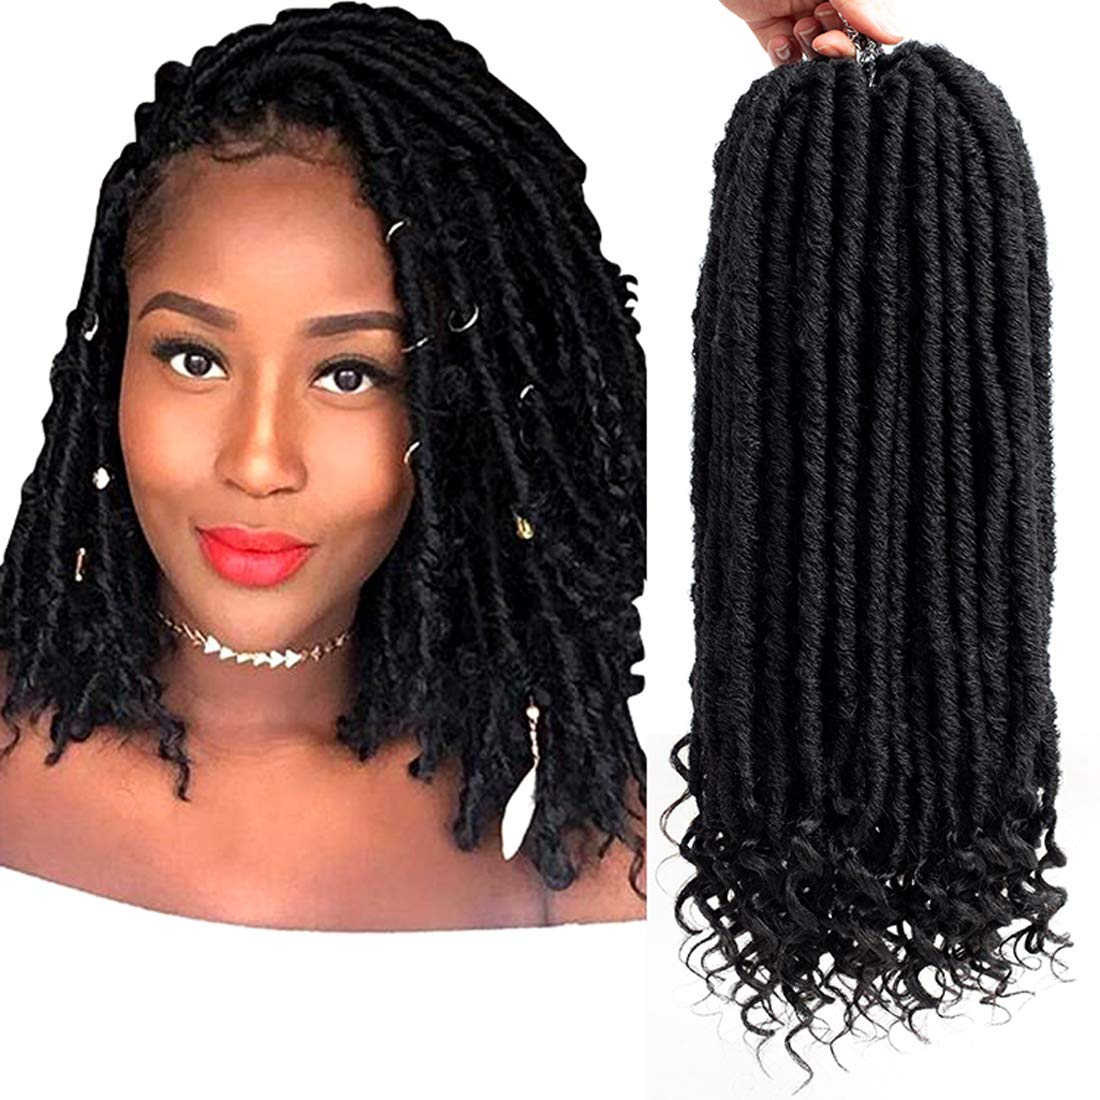 Amazon Com Sunrs 6 Packs 14 Short Goddess Faux Locs With Curly Natural Black Straight Dreadlocks Crochet Braid Hair Extensions 24 Roots Dreadlocks Fiber For Girl Women 14 1b Beauty